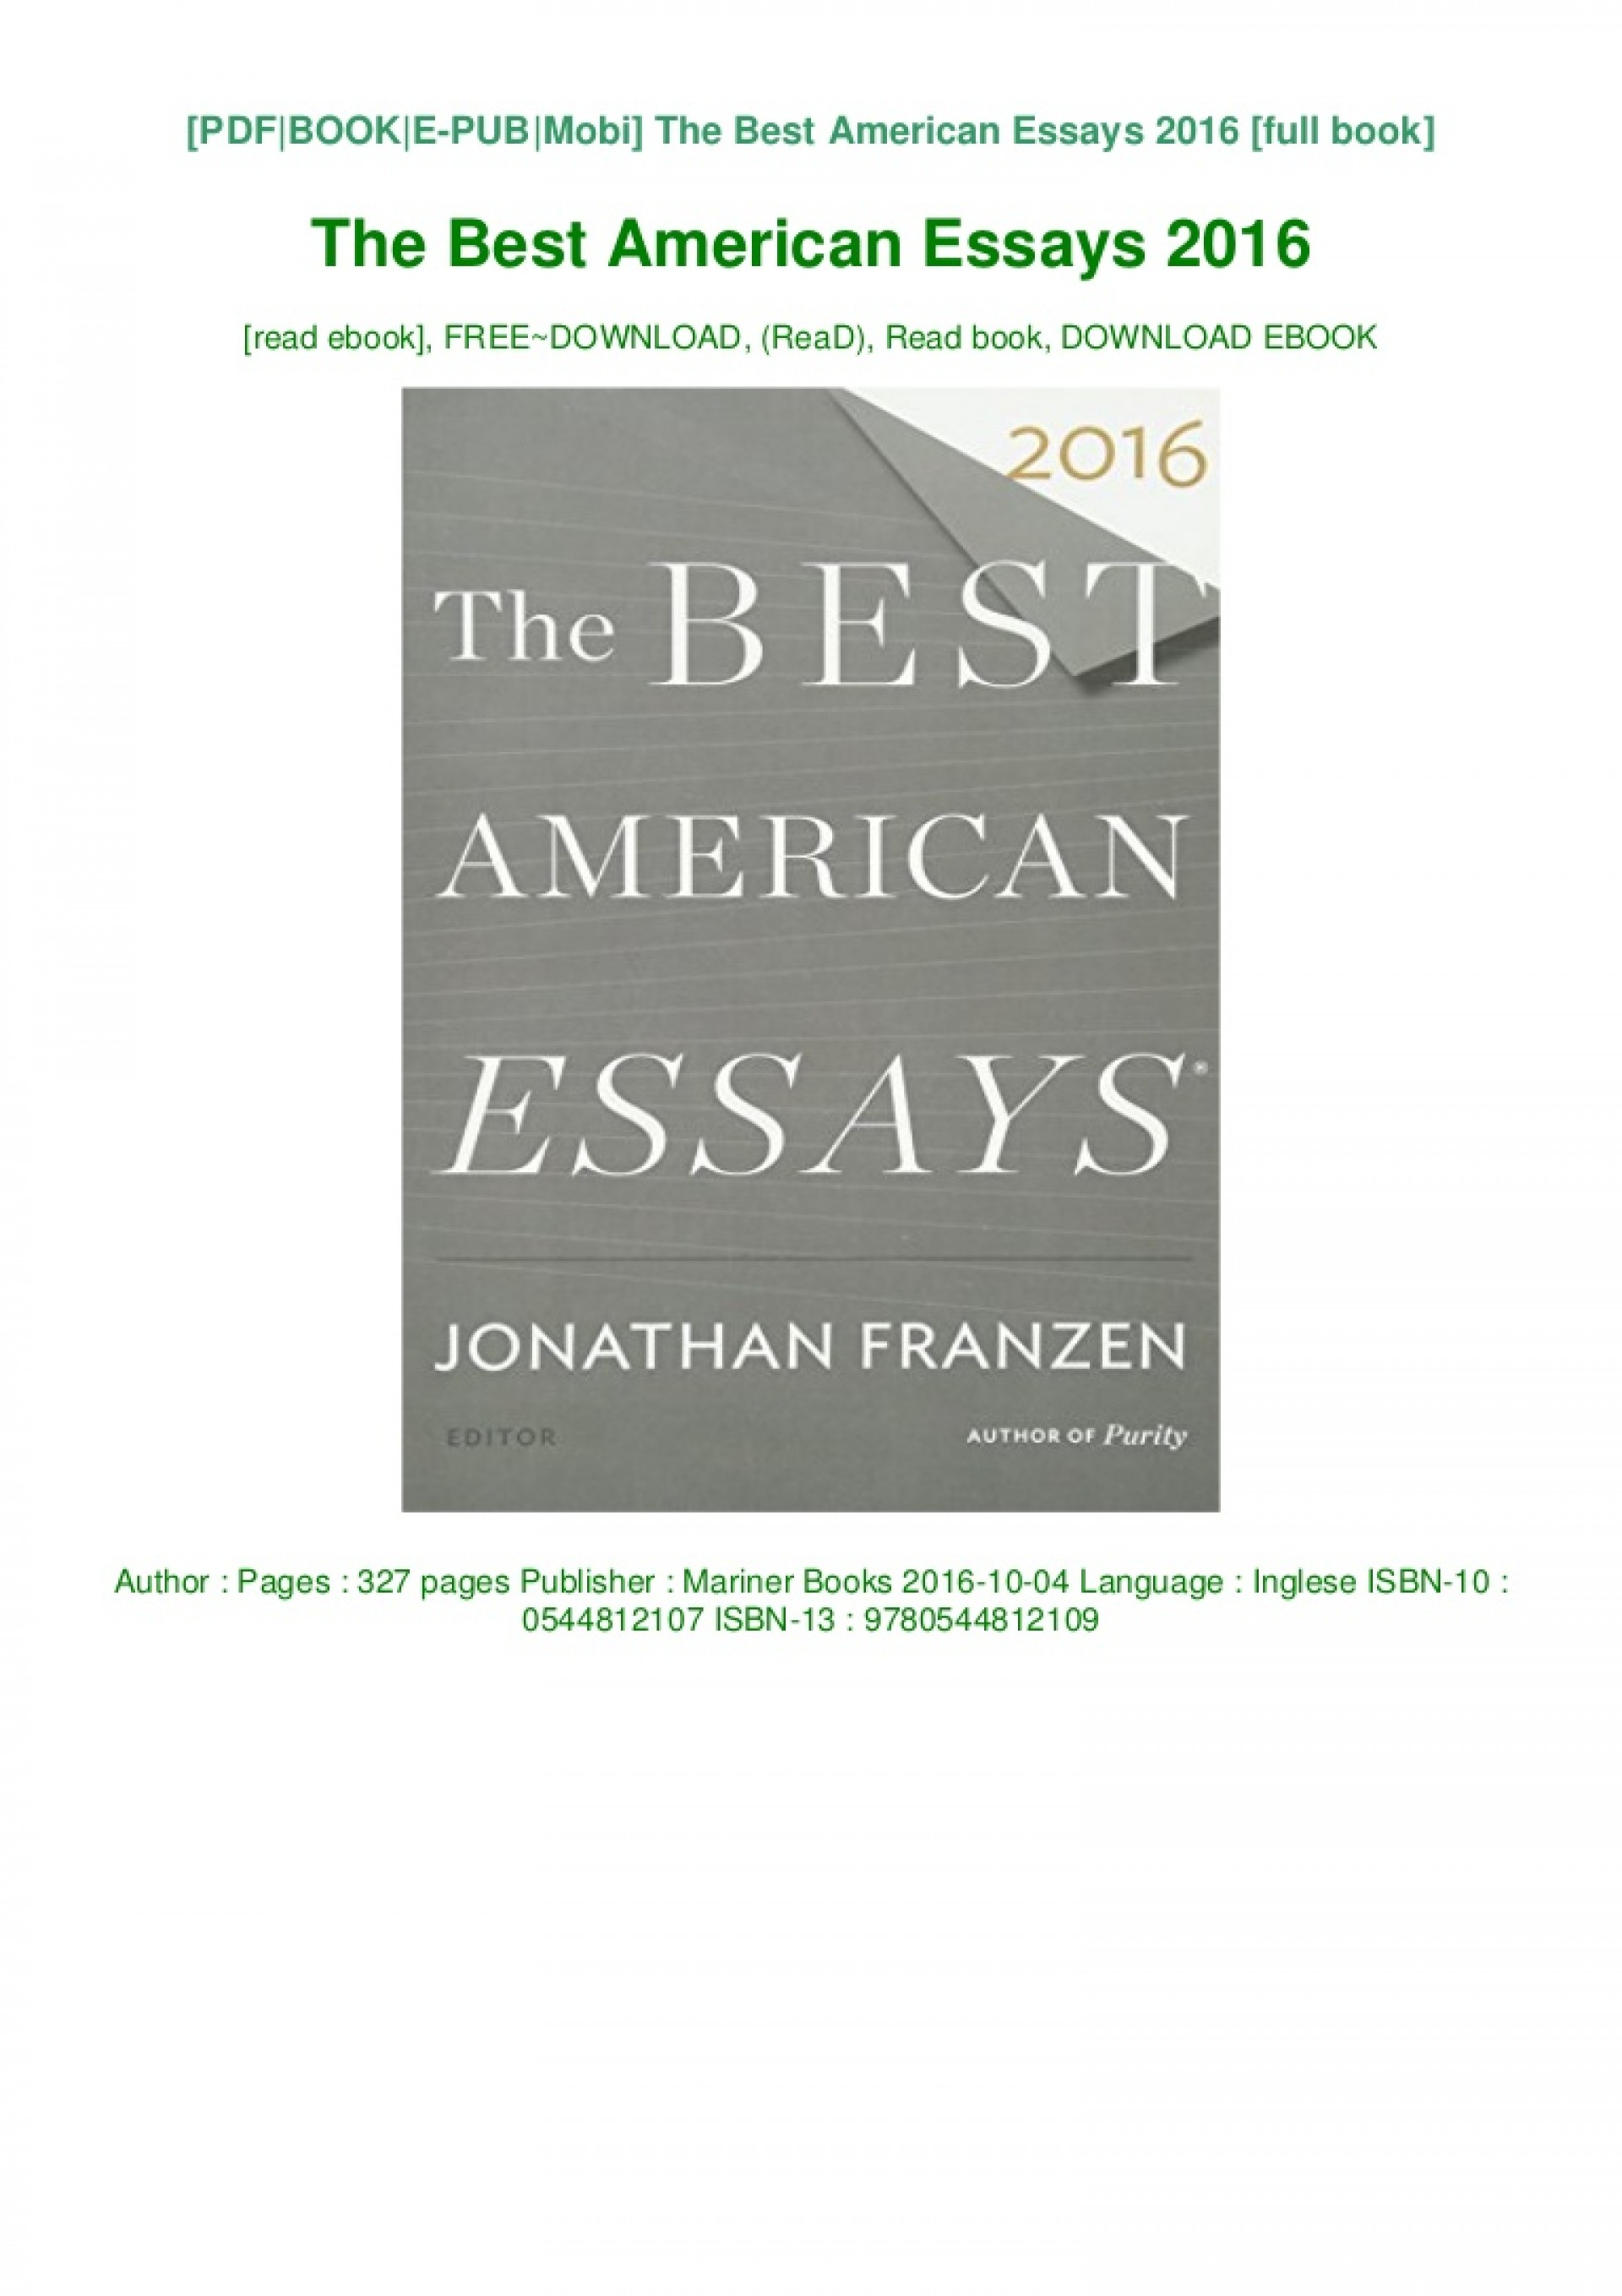 004 The Best American Essays Download Pdf Epub Audiobook Ebook Thumbnail Essay Phenomenal 2016 Sparknotes 1920